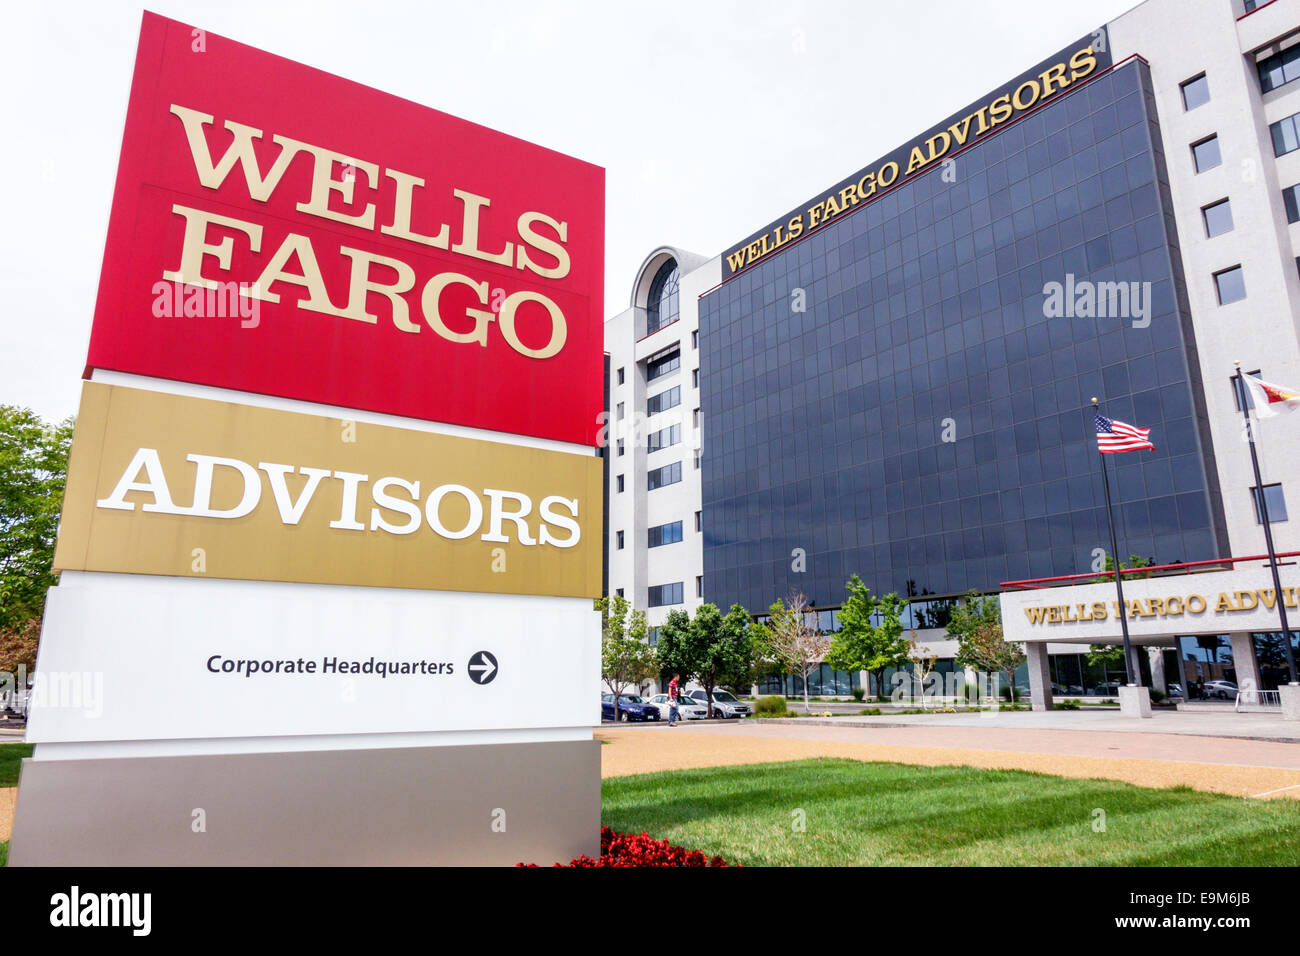 St Louis Missouri Saint Wells Fargo Advisors Corporate